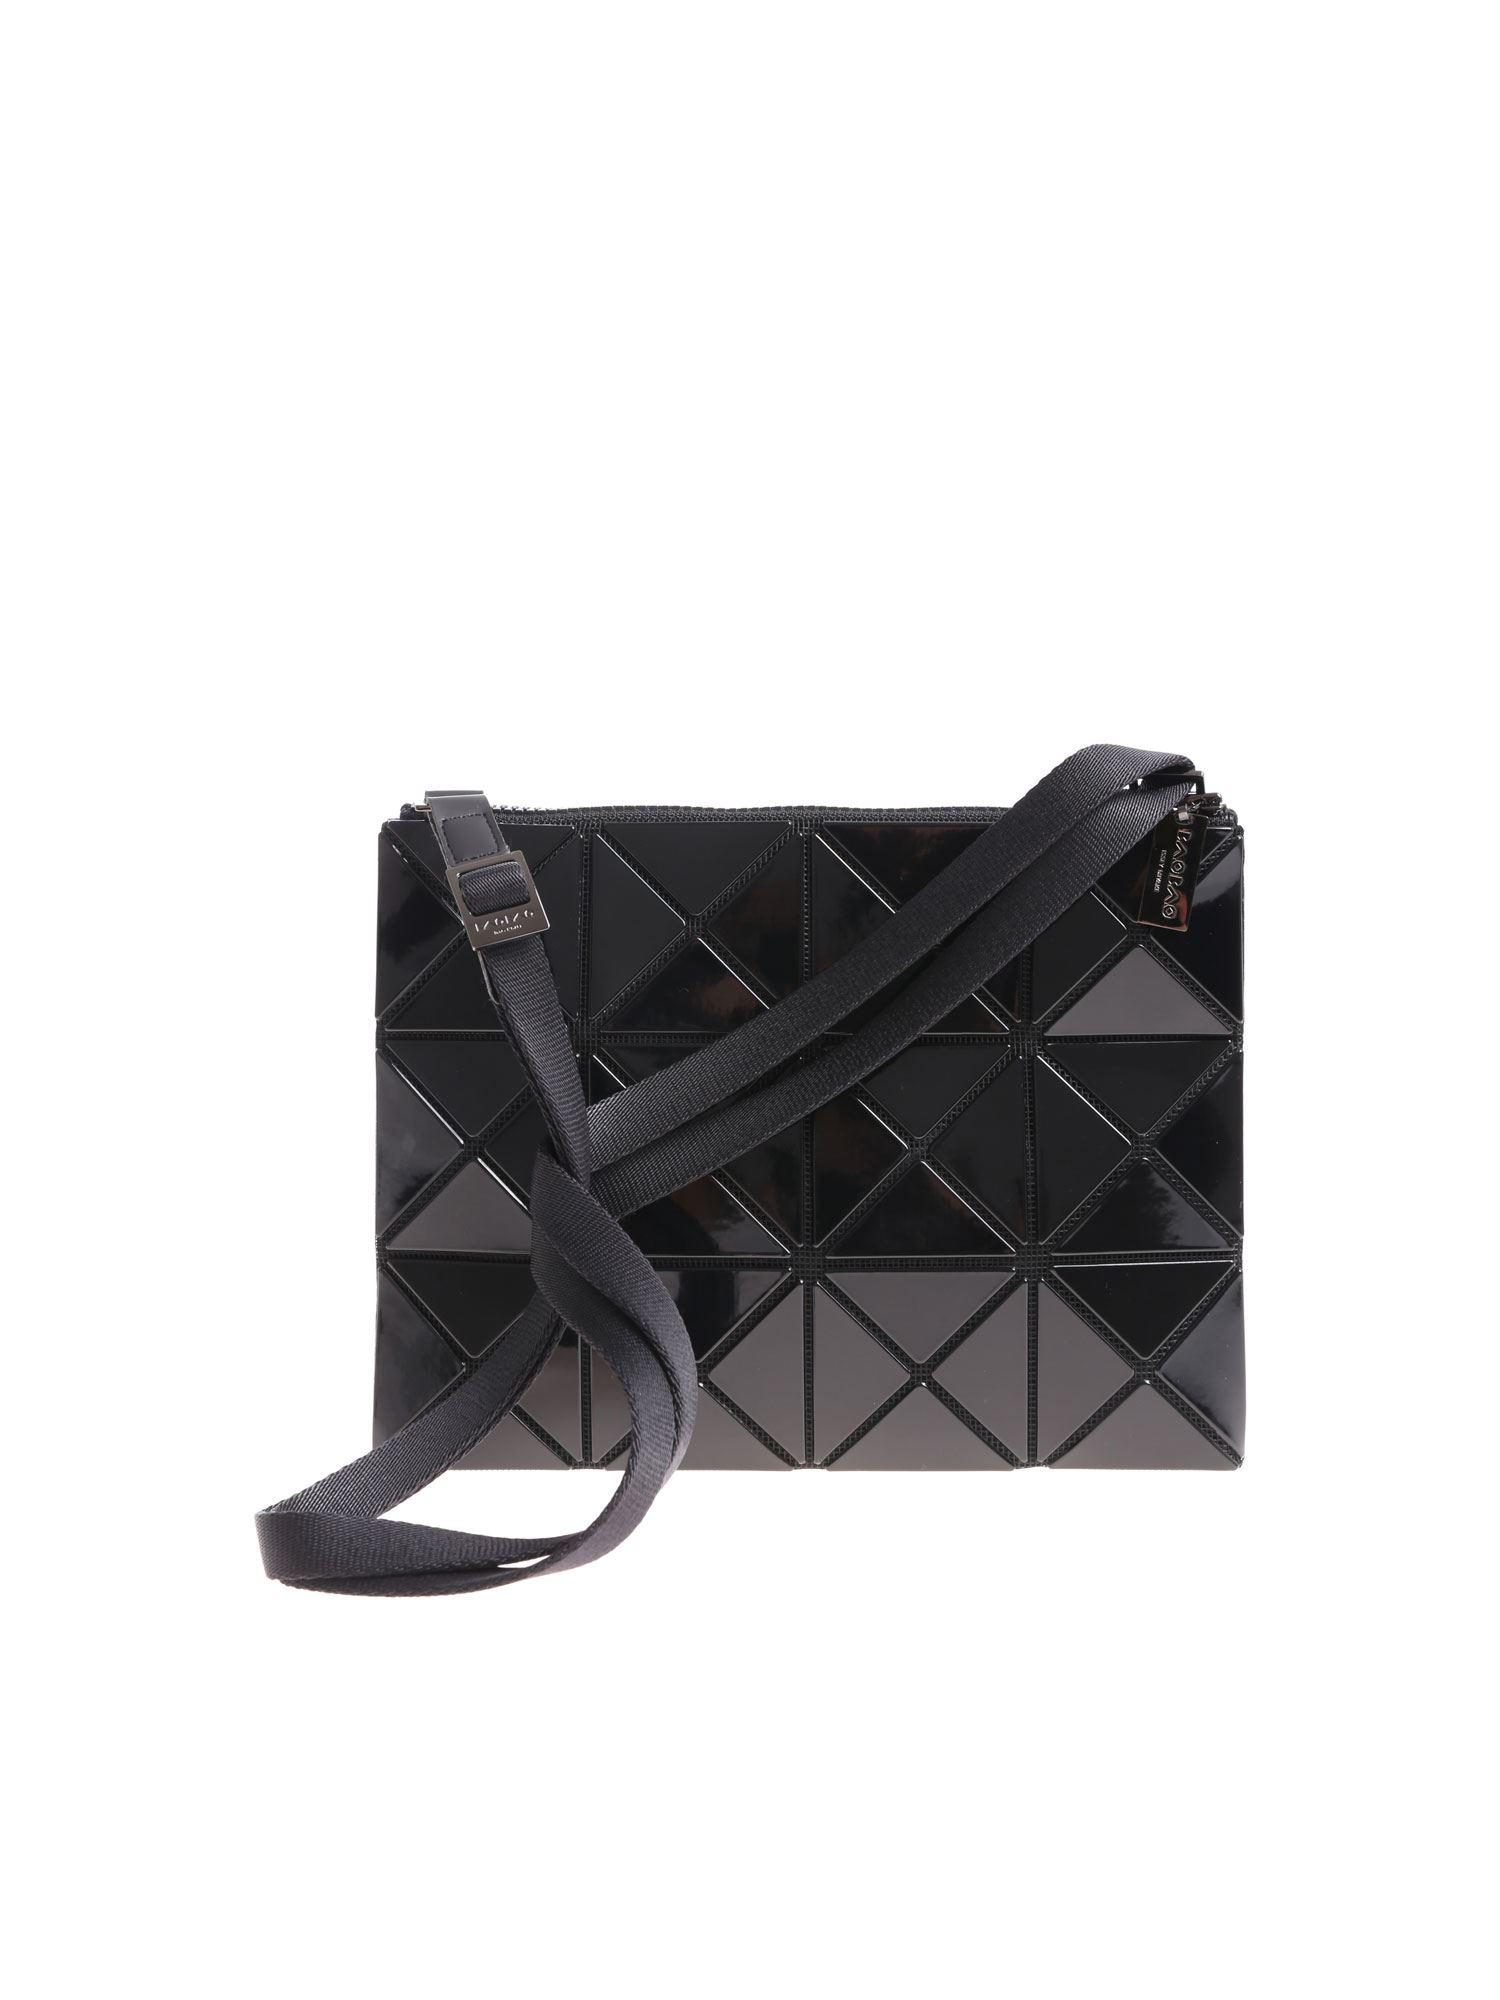 9d2953e1d5 Lyst - Bao Bao Issey Miyake Soft Black Shoulder Bag With Squares And ...